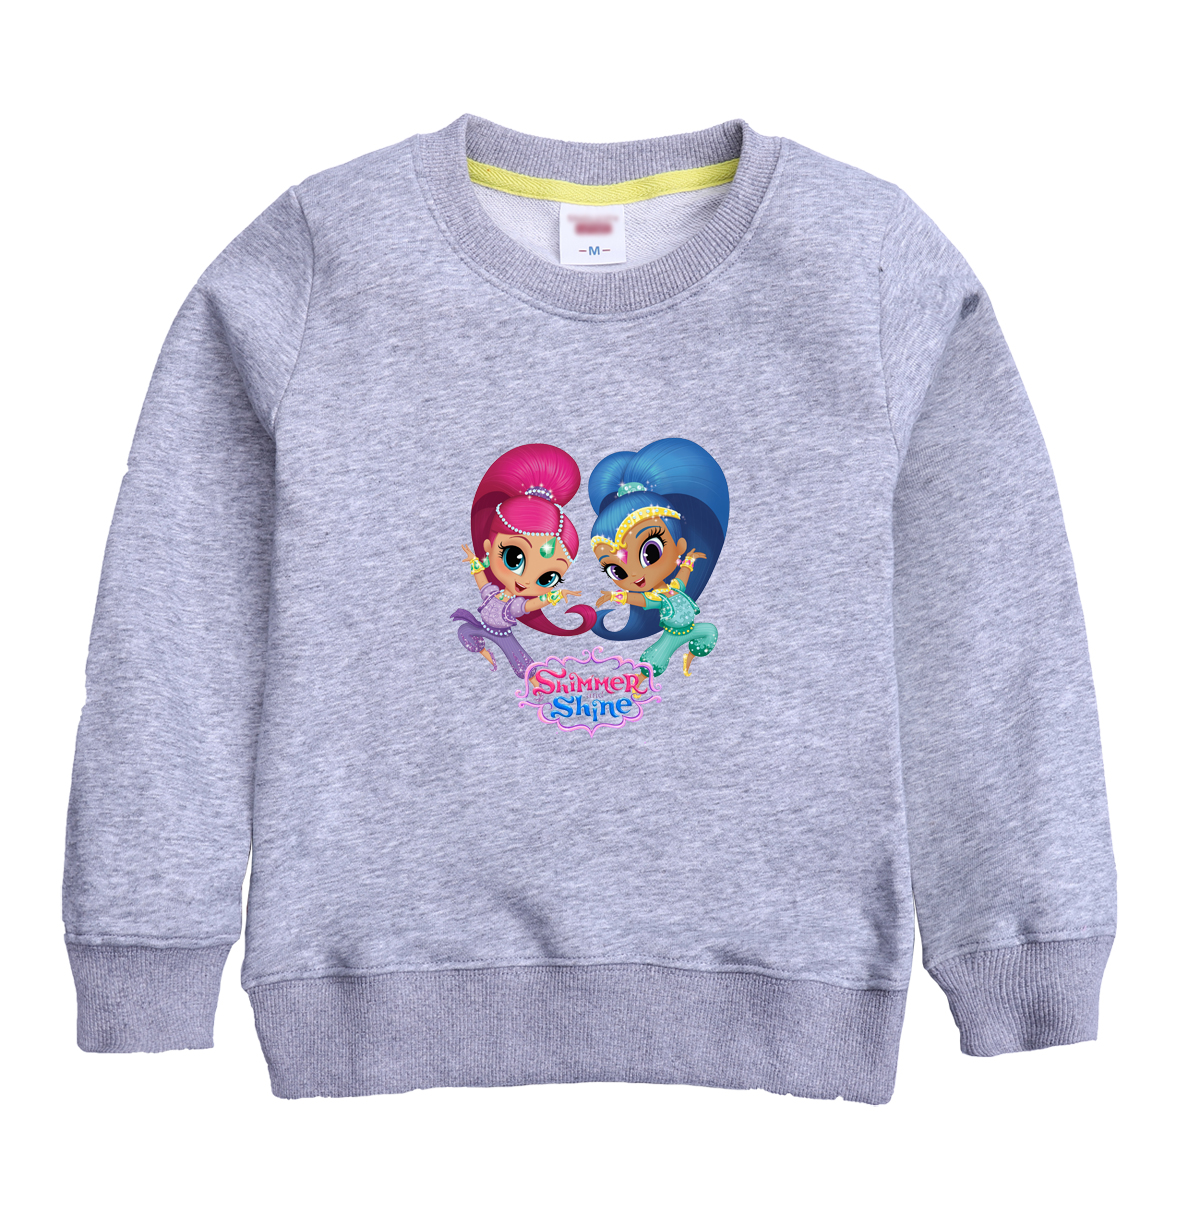 Winter autumn sweatshirt design for children hooded childrens clothing with 8 colors for child choose winter sweater